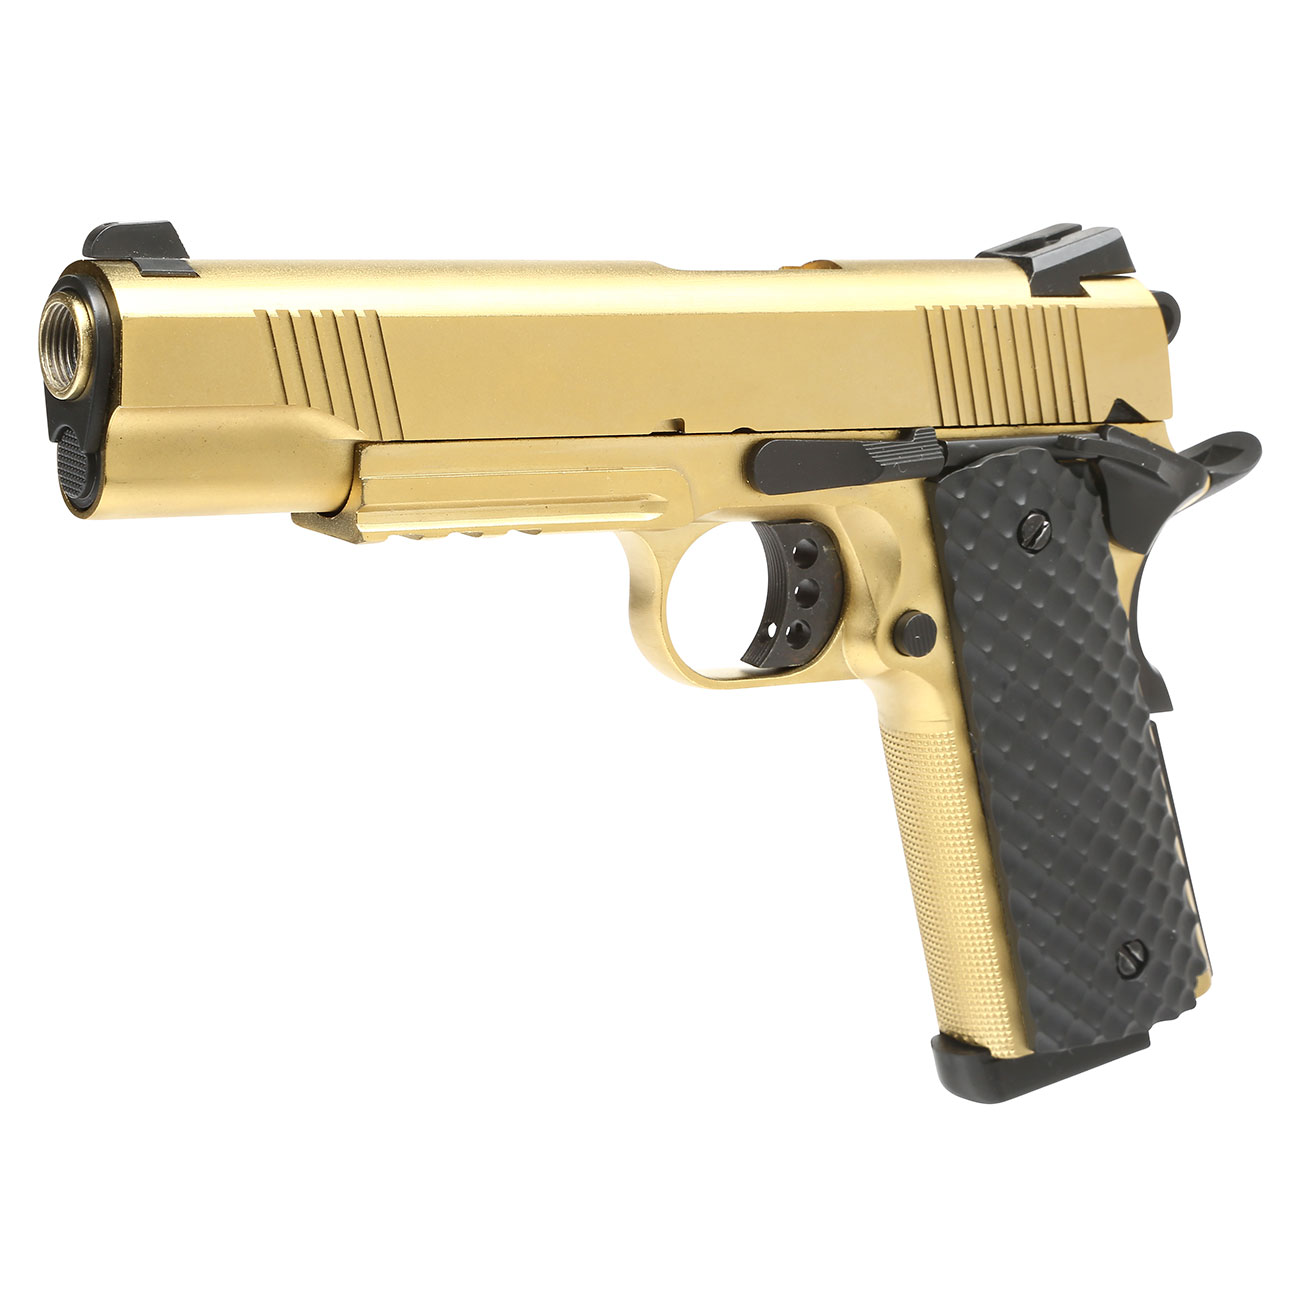 Nuprol Raven M1911 MEU Railed Vollmetall GBB 6mm BB gold 0